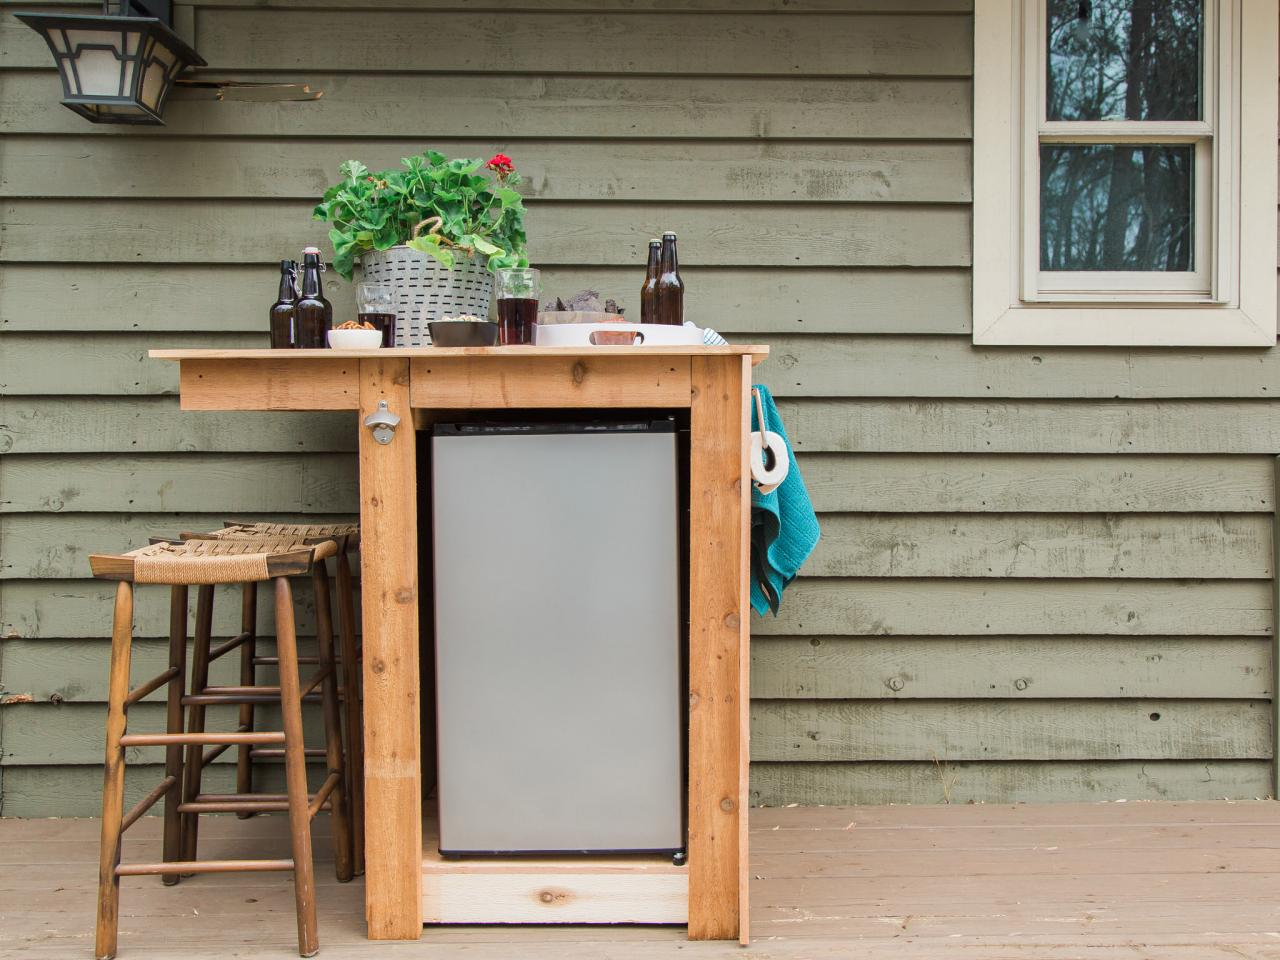 5 Essentials for the Perfect Outdoor Kitchen - Add a Fridge